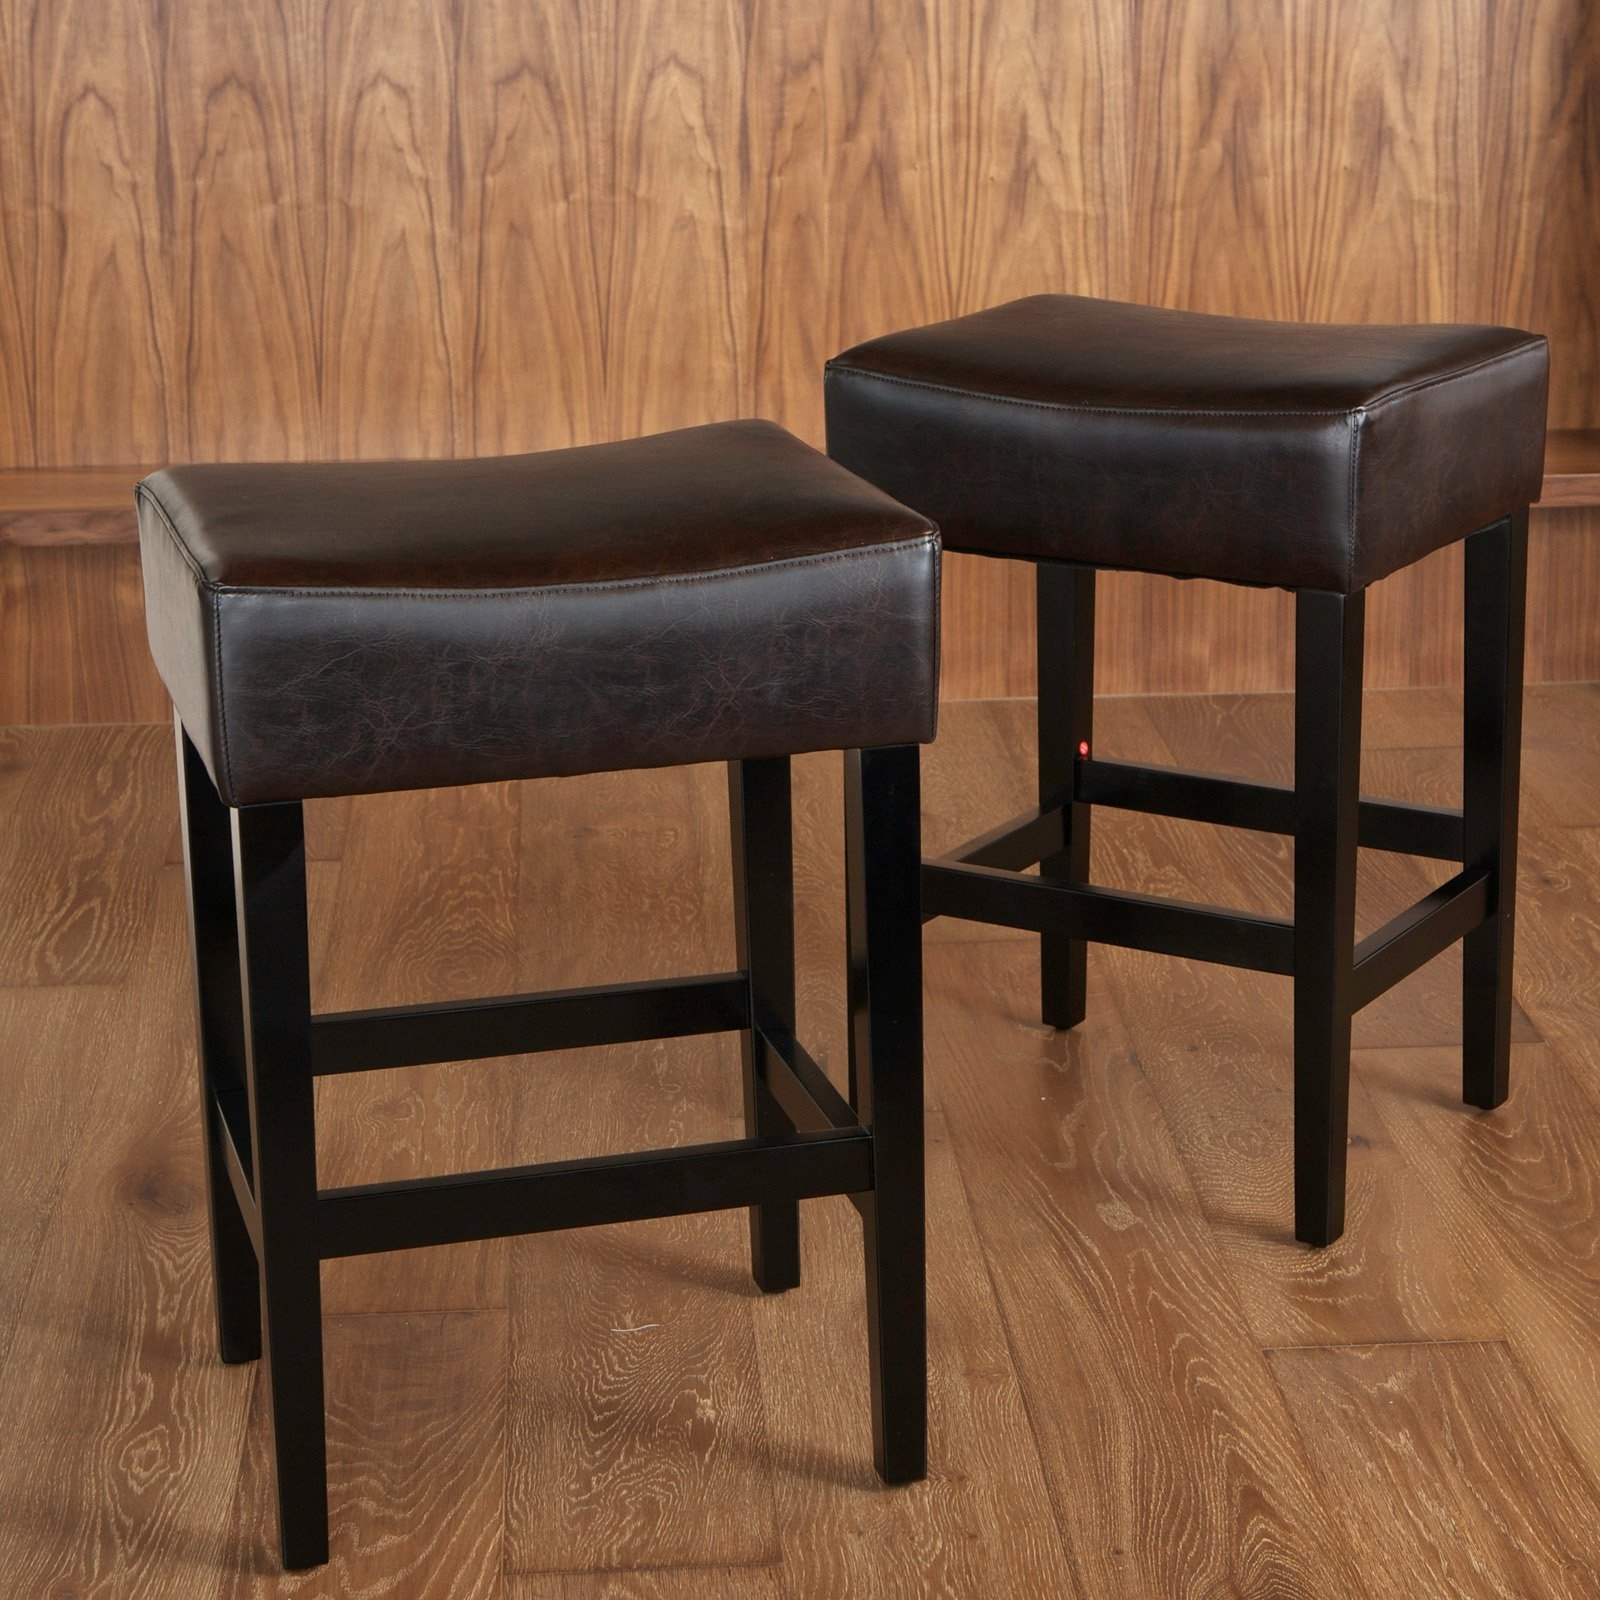 Most Popular Laurent 7 Piece Counter Sets With Wood Counterstools With Lopez Backless Brown Leather Counter Stools – 2 Pack – Walmart (Gallery 13 of 25)